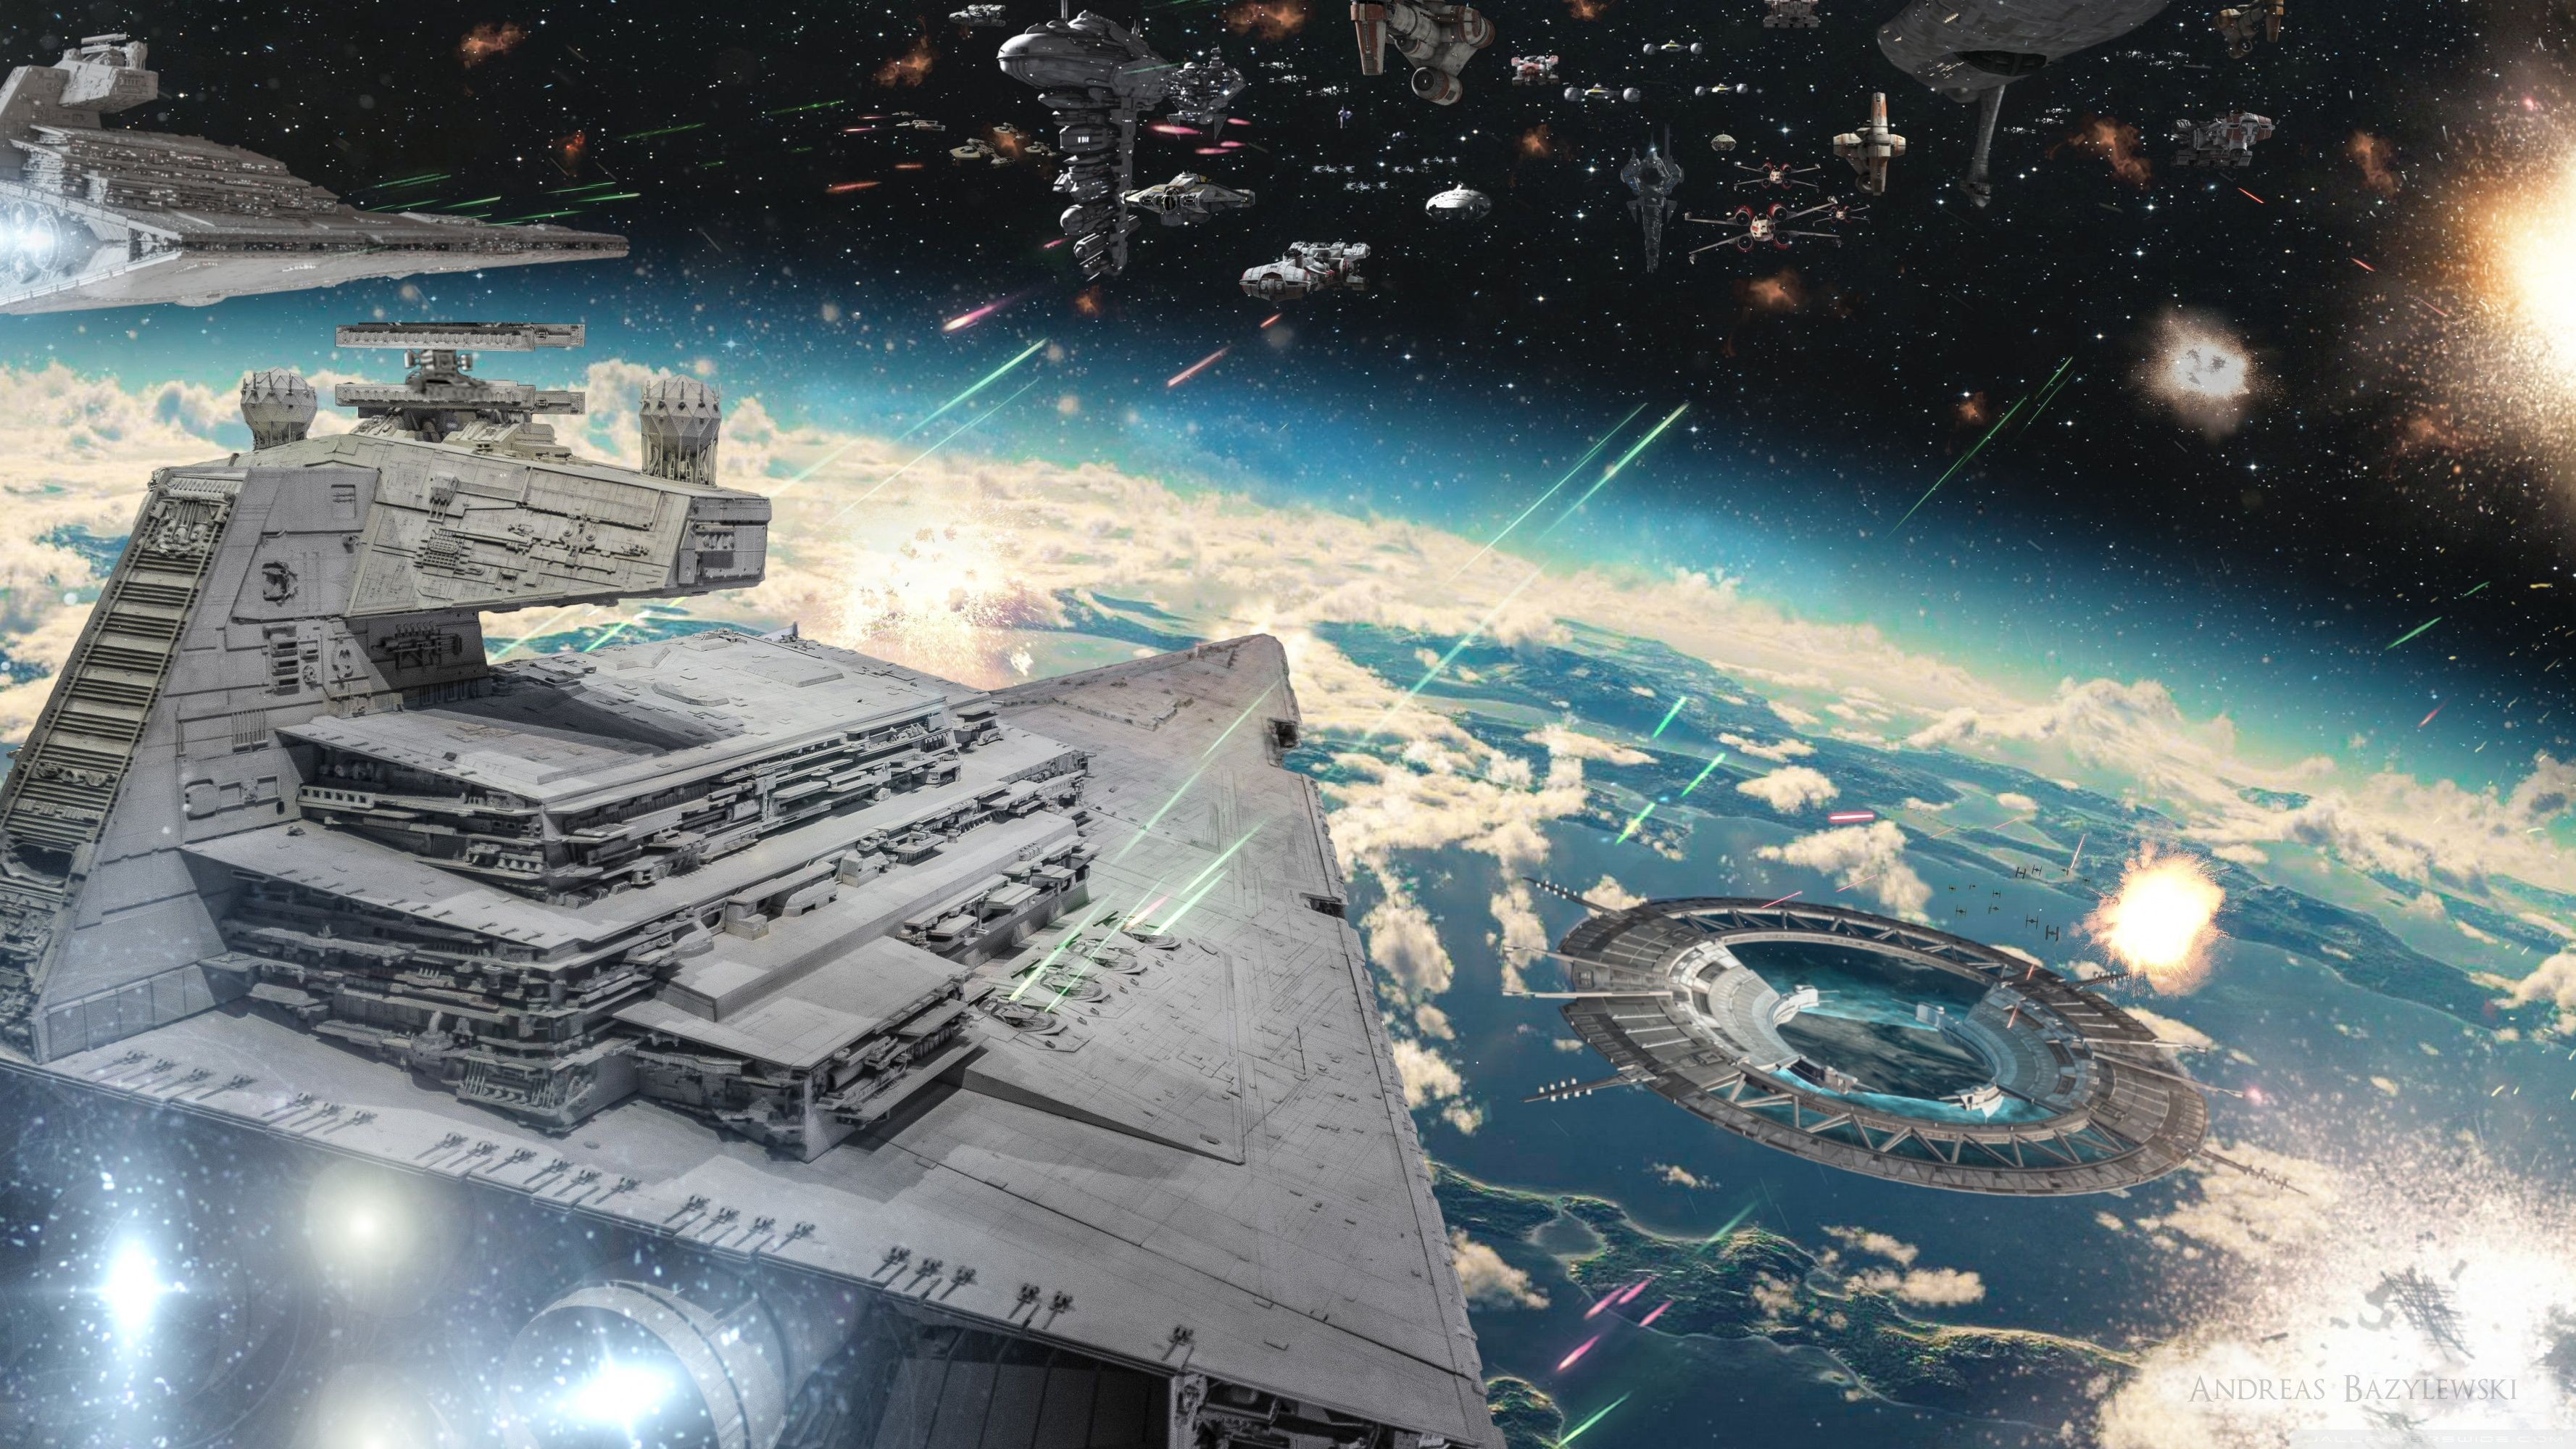 Imperial Star Destroyer Wallpapers Wallpaper Cave